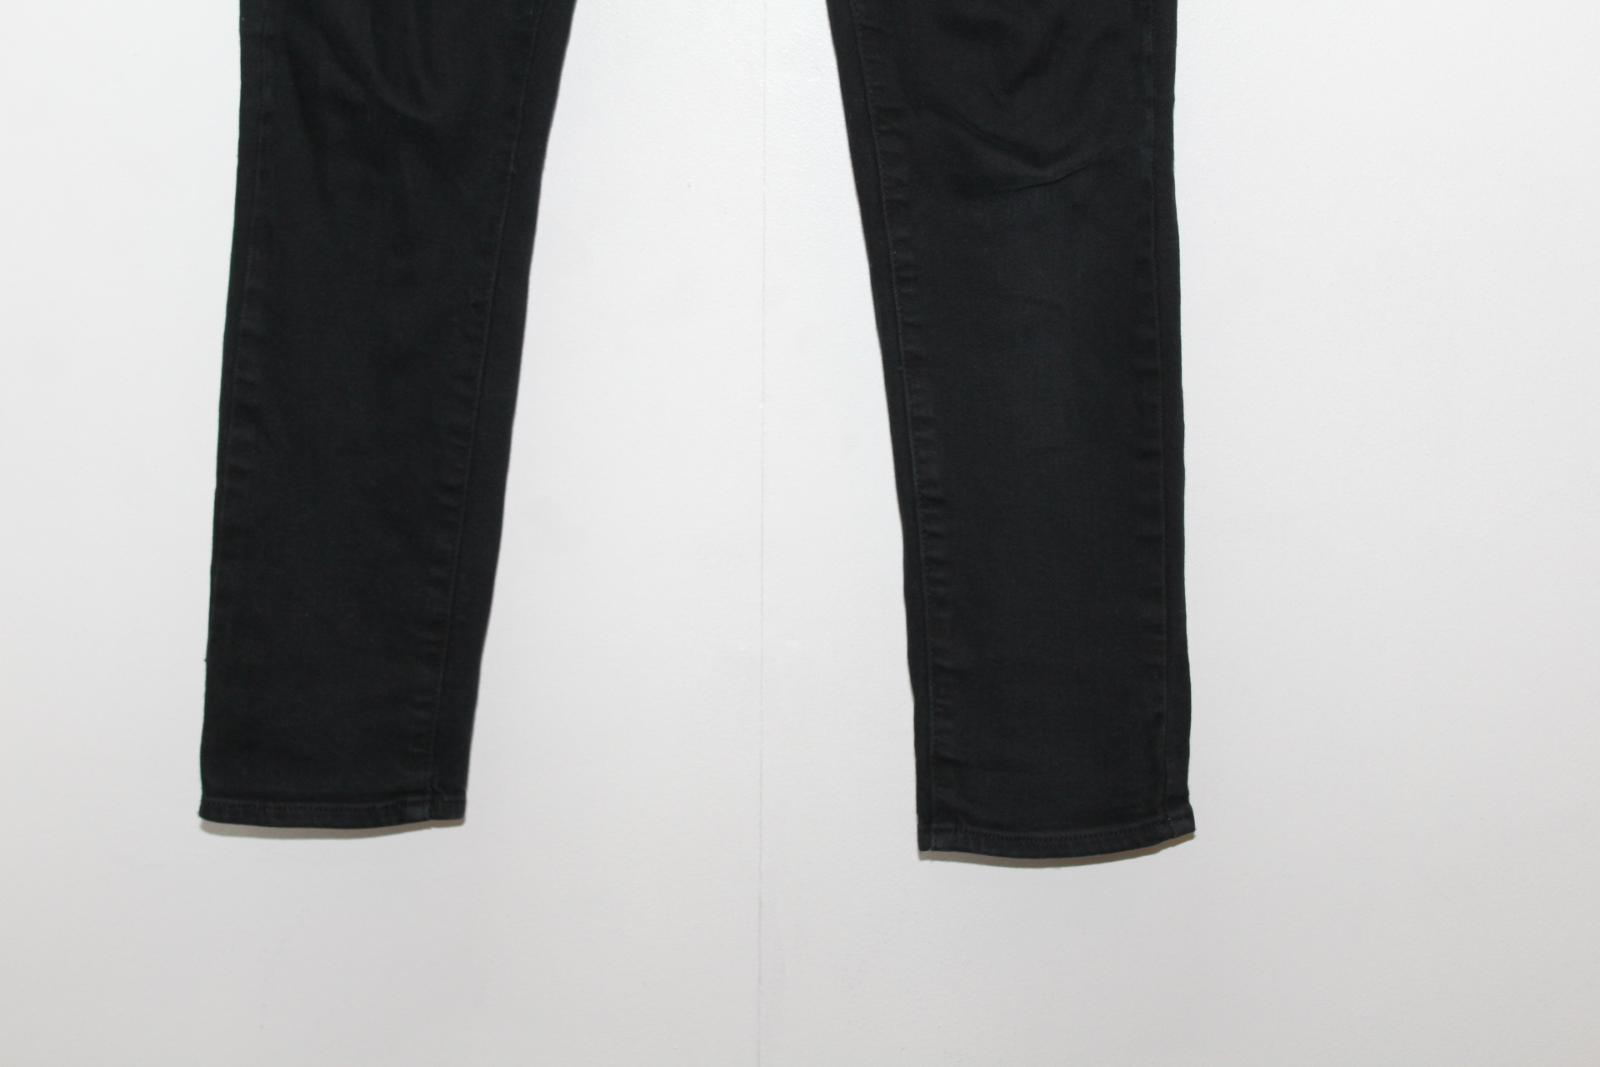 L28 Skyline Black caviglia W25 Paige Ladies Jeans cinturino Cotton con Blend alla Low Rise ORCwqF